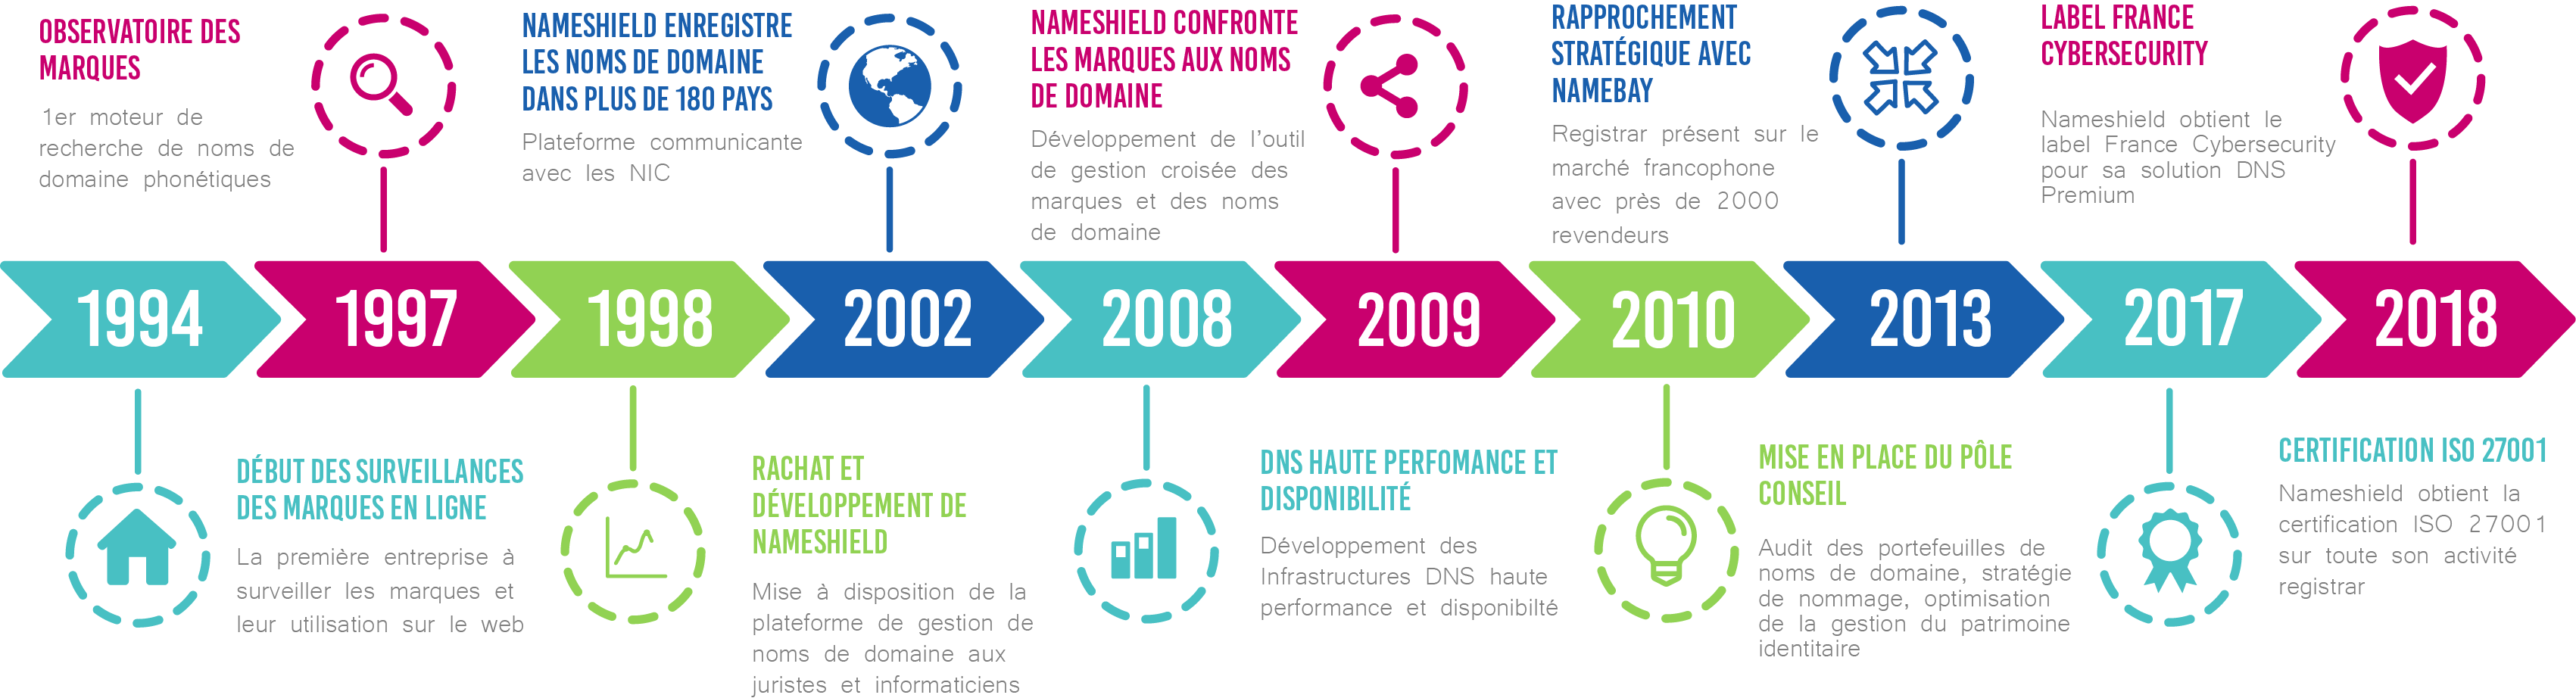 Timeline Nameshield - Historique